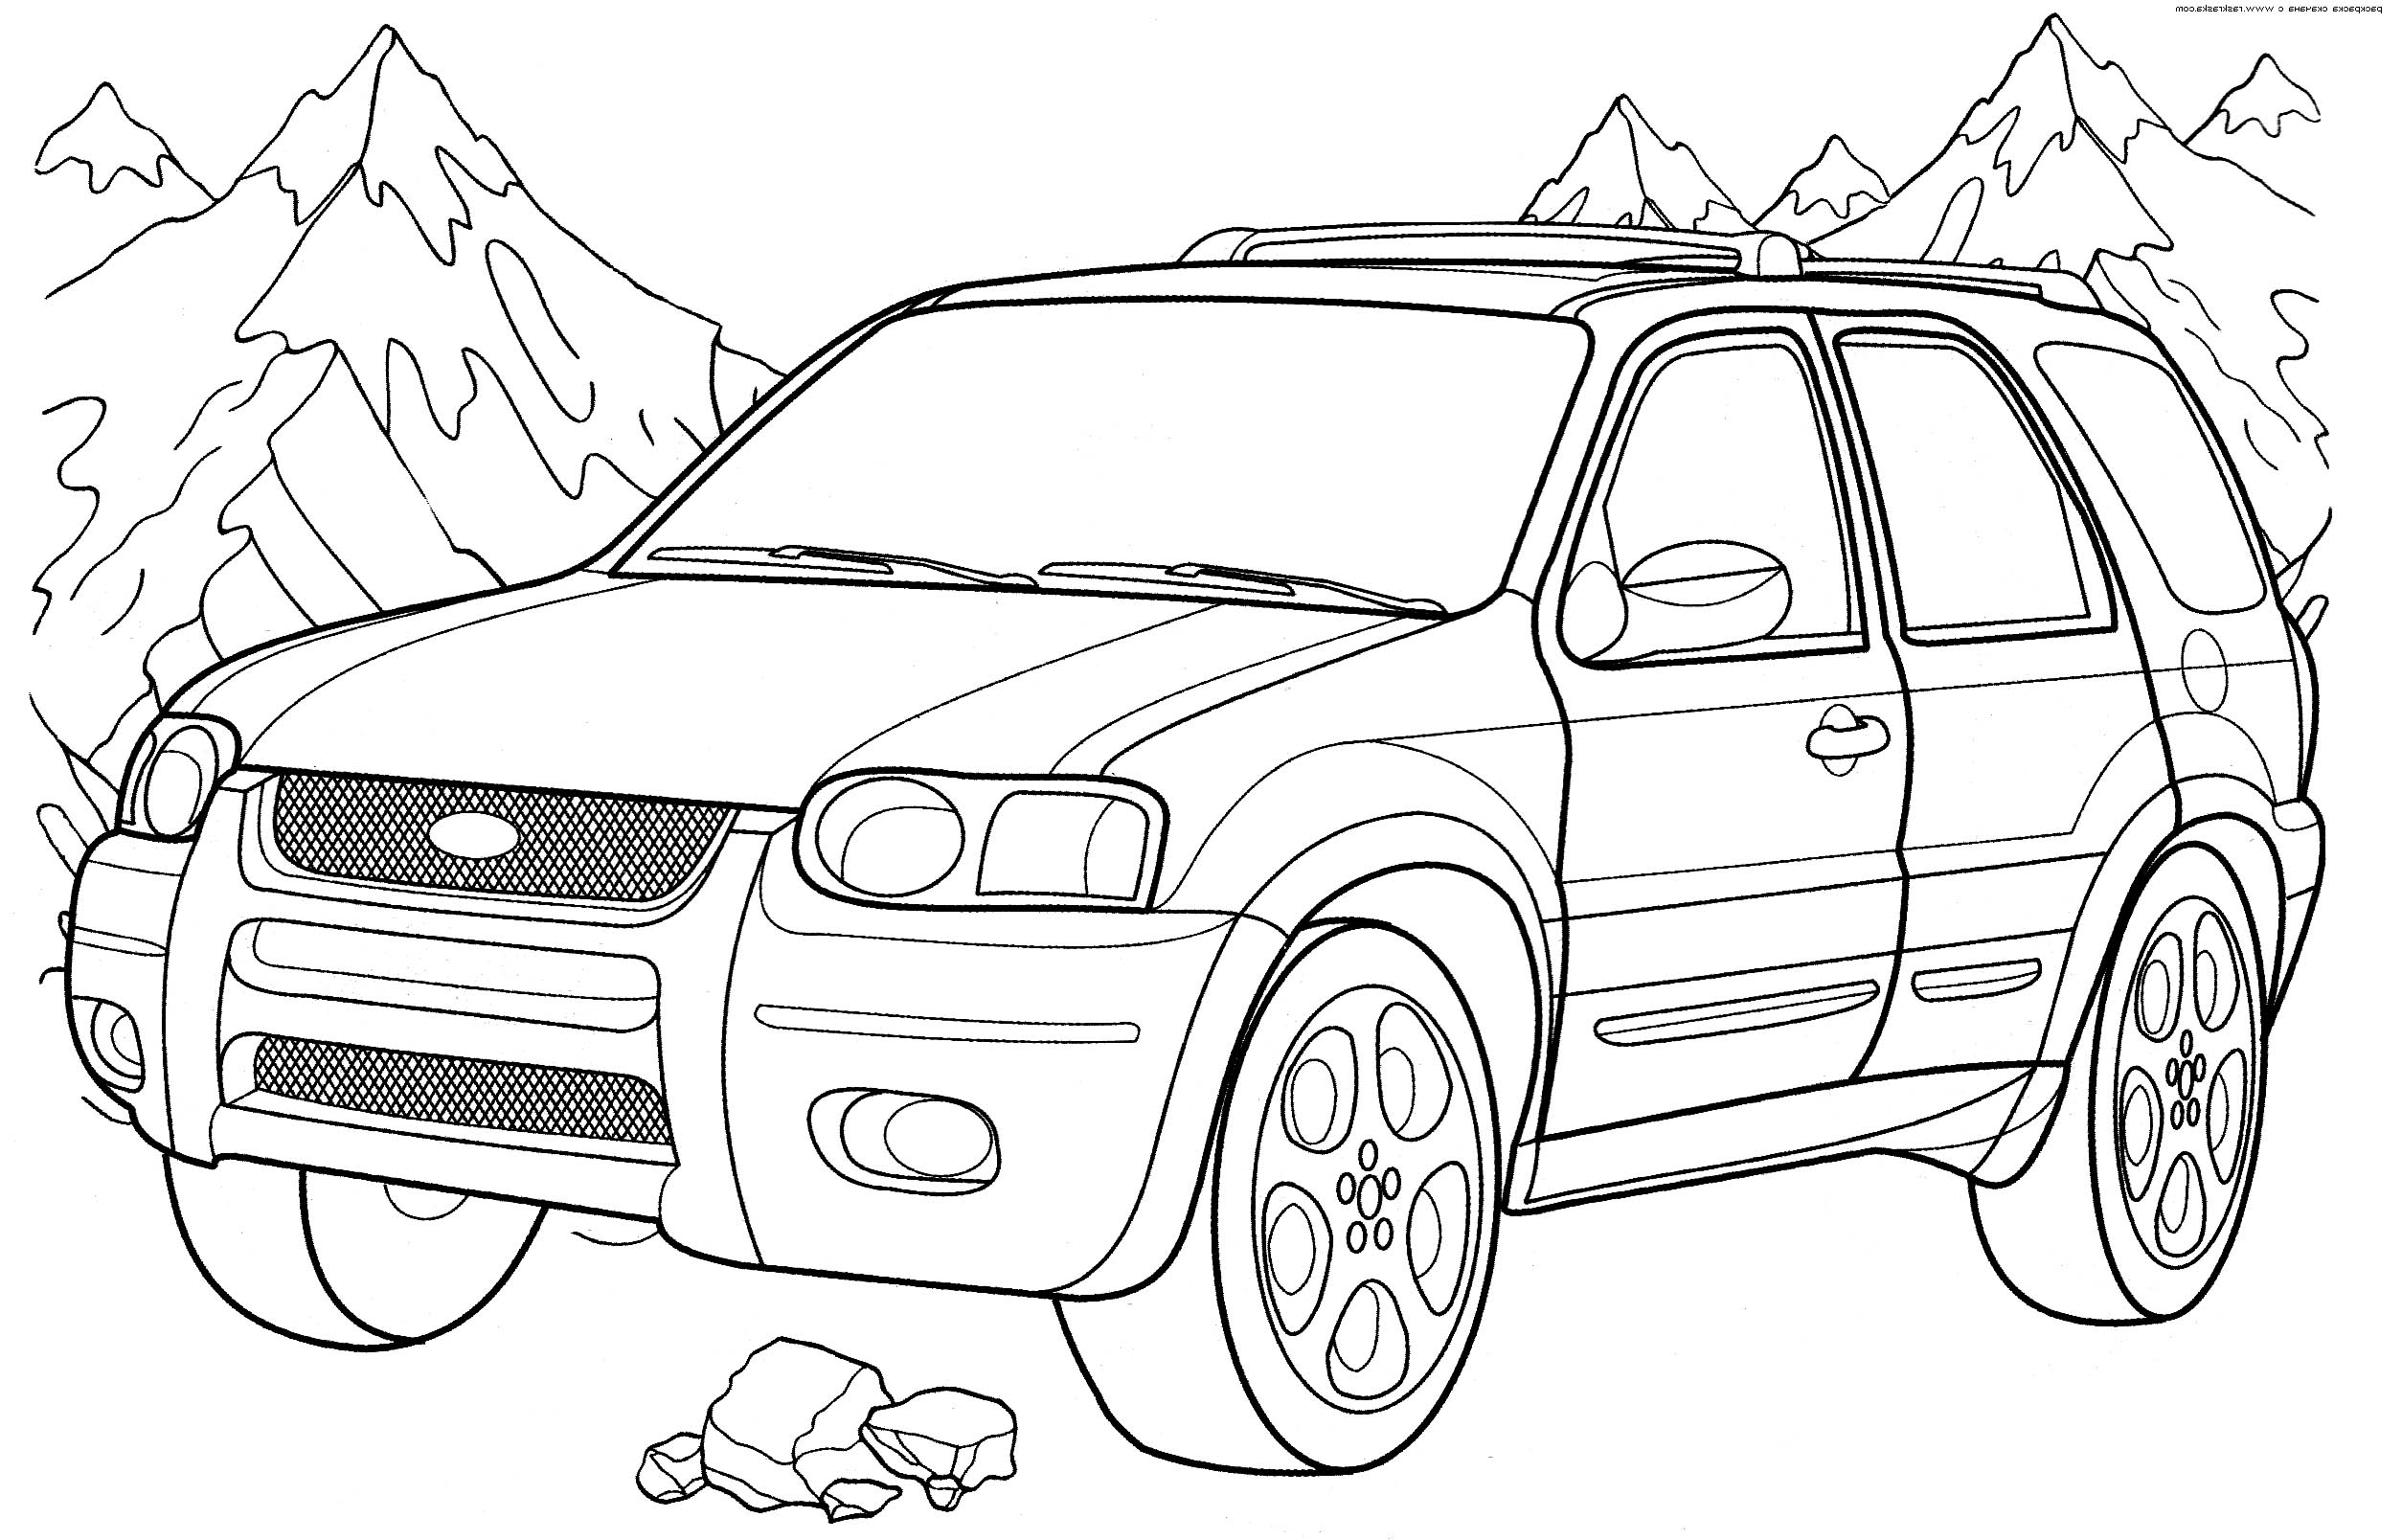 real car coloring pages free printable cars coloring pages for kids cool2bkids pages car real coloring